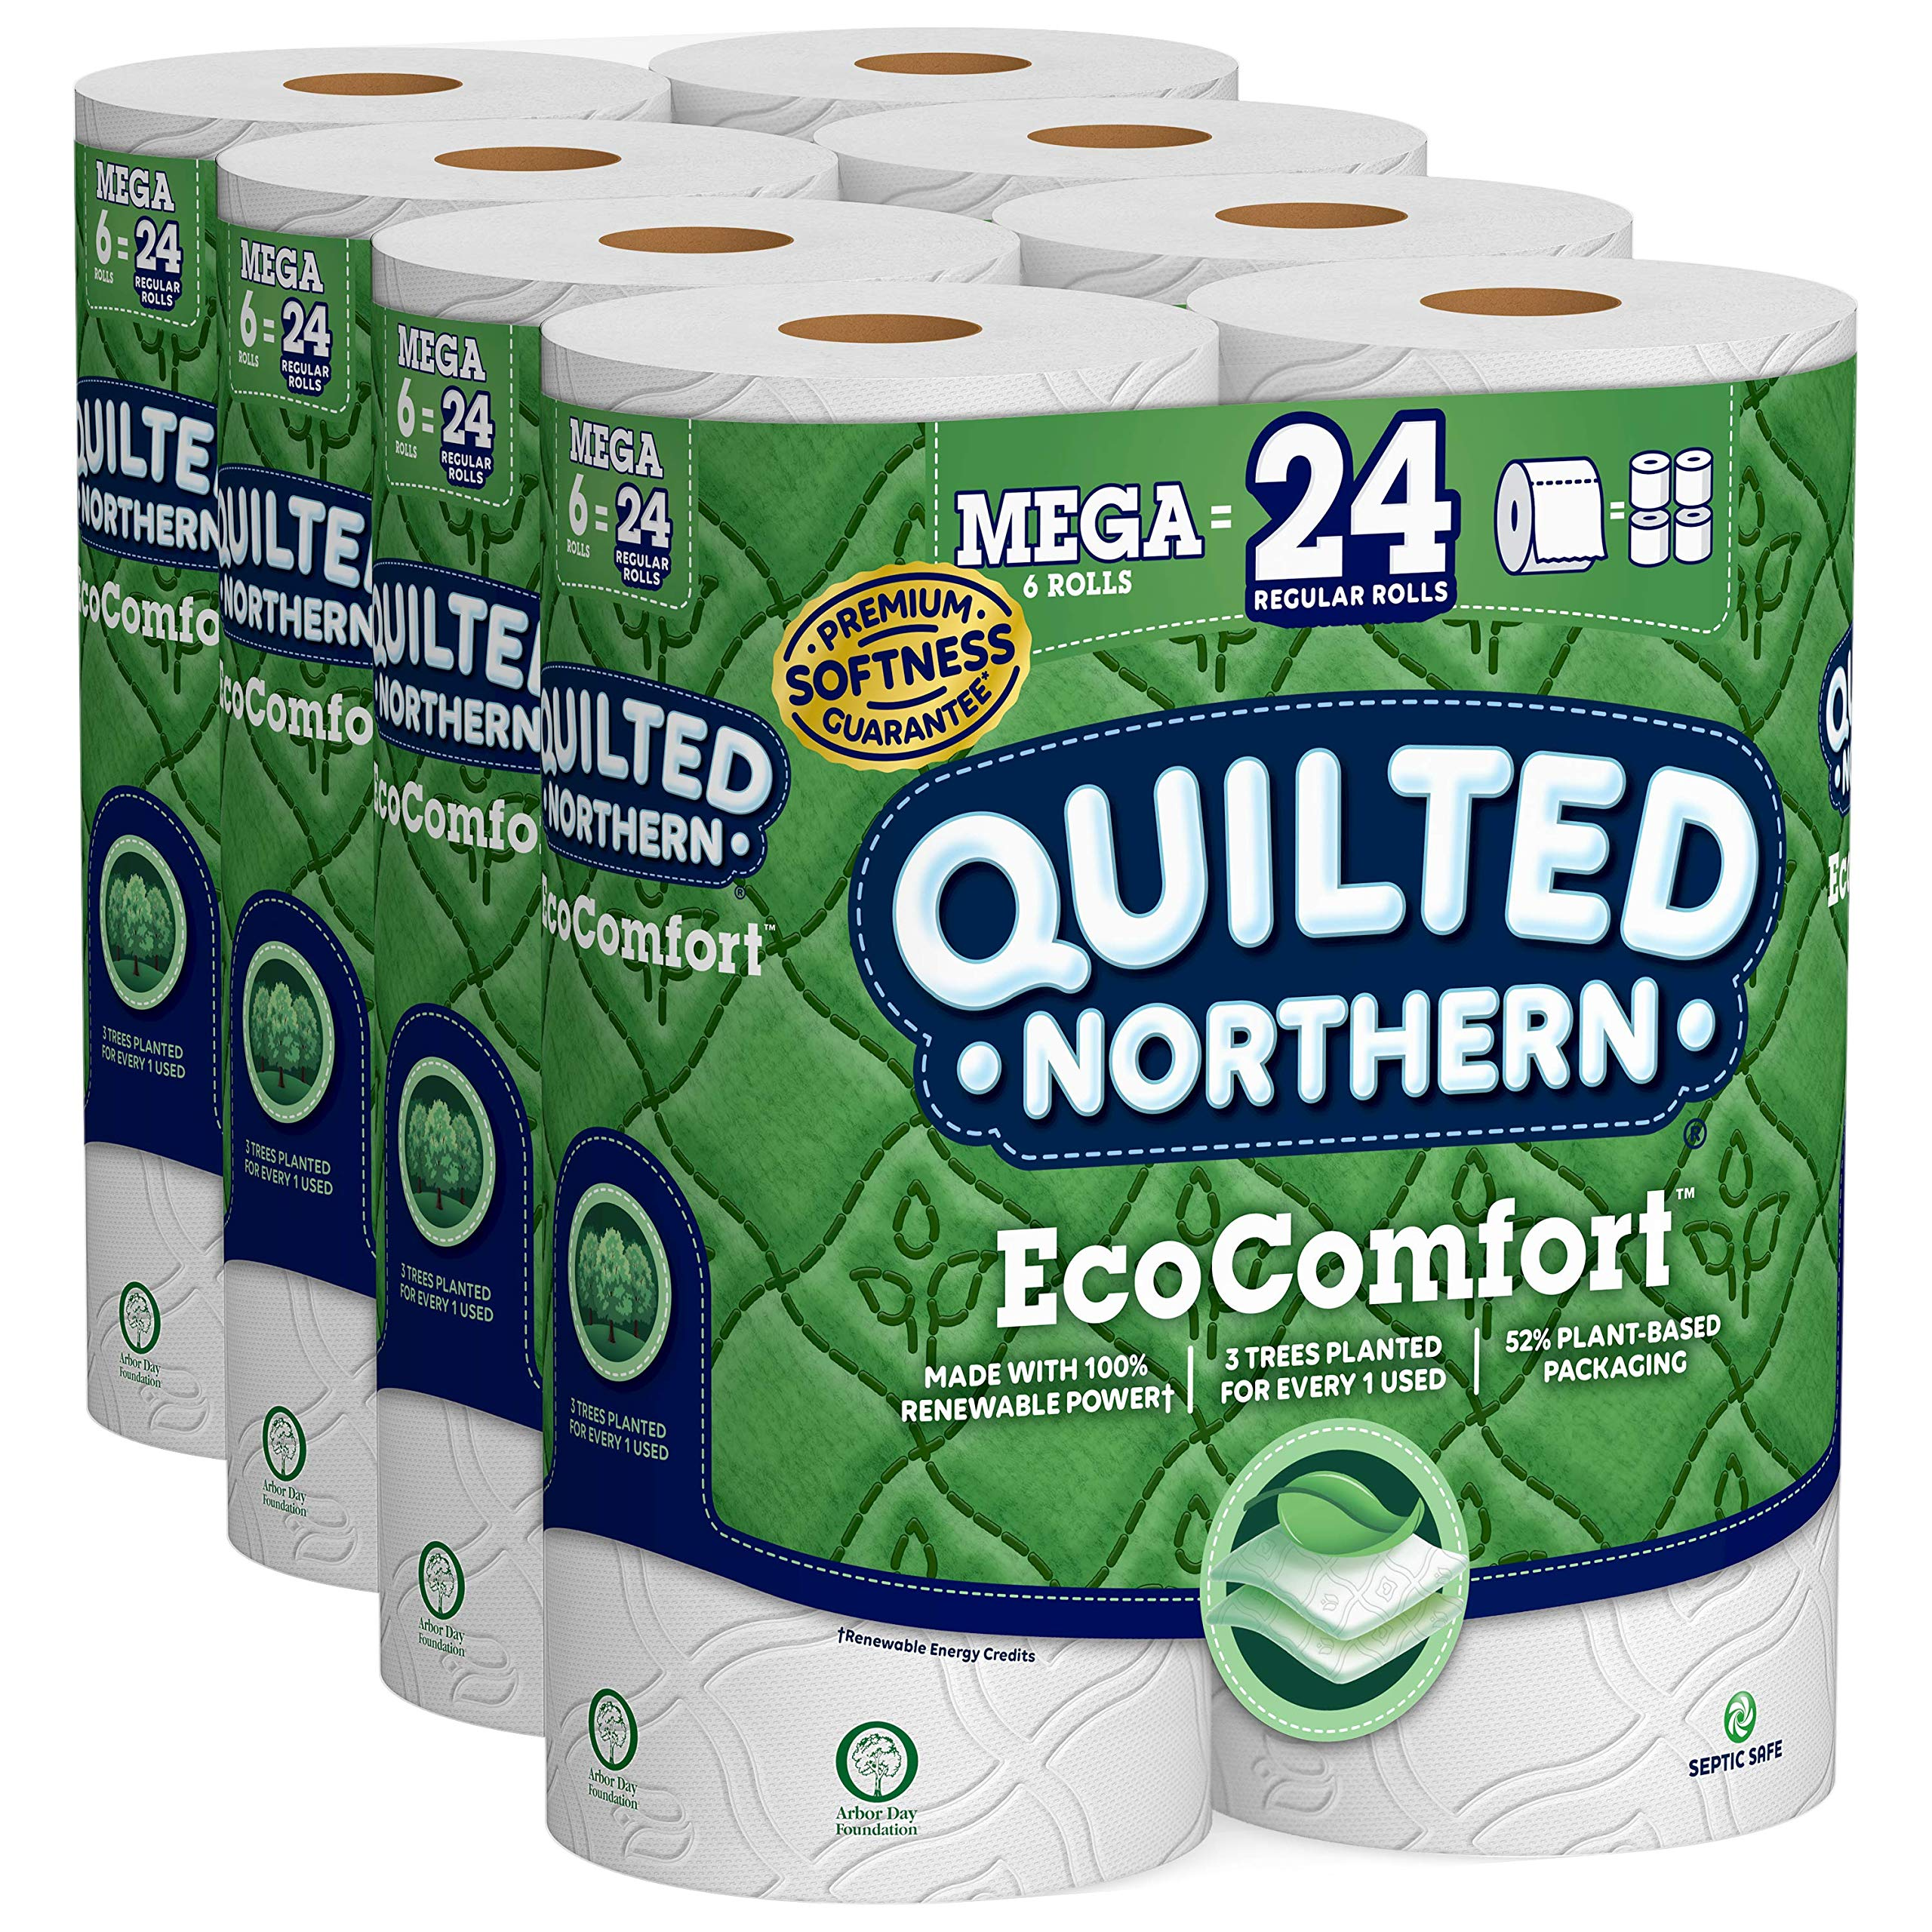 Quilted Northern EcoComfort Toilet Paper, 24 Mega Rolls 2-Ply (4 Packs of 6 Mega Rolls) by Quilted Northern